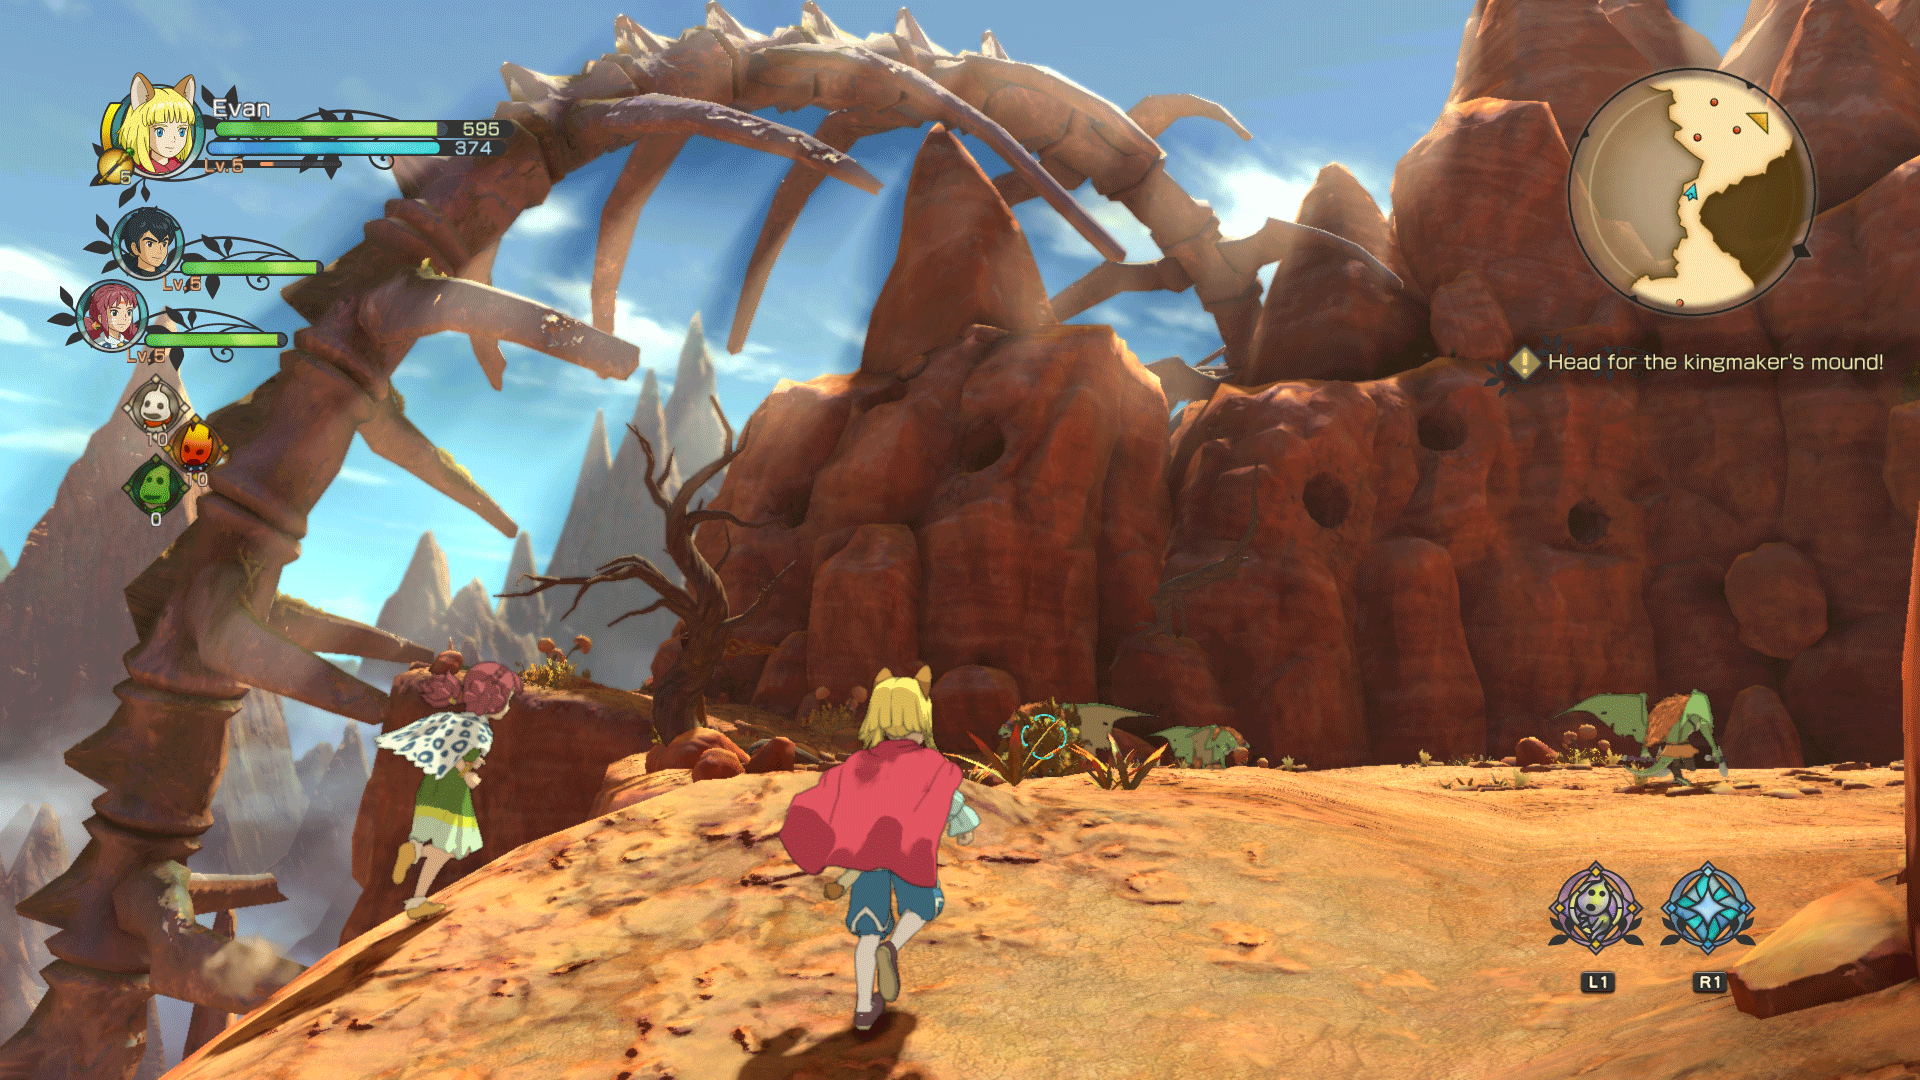 ni-no-kuni-2-screens-13